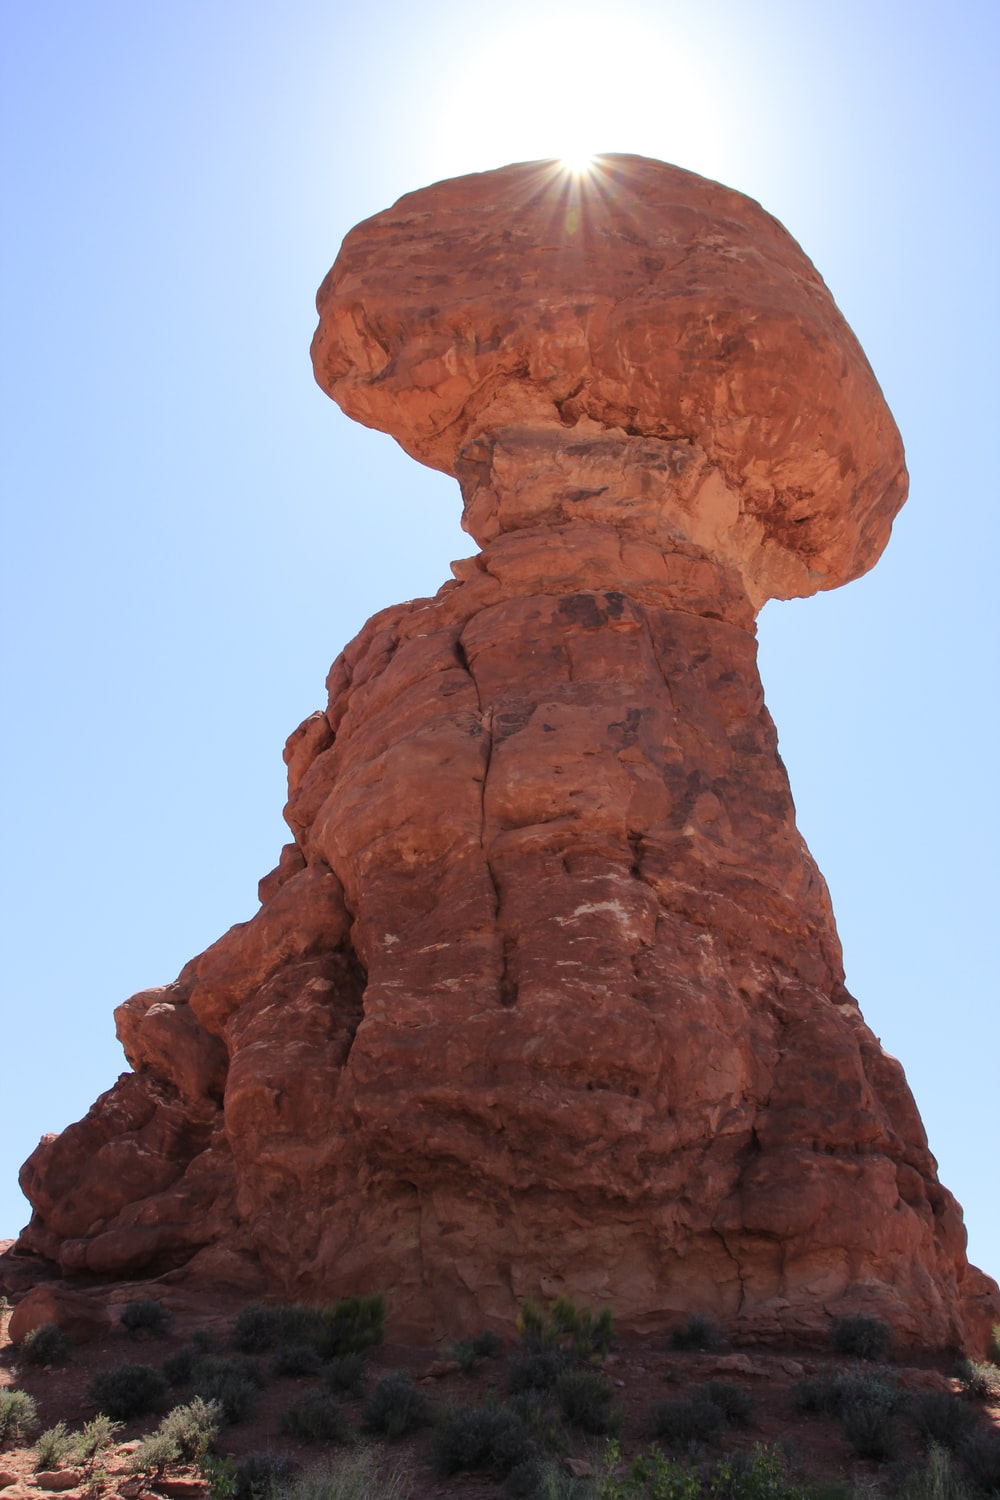 brown stone formation during daytime